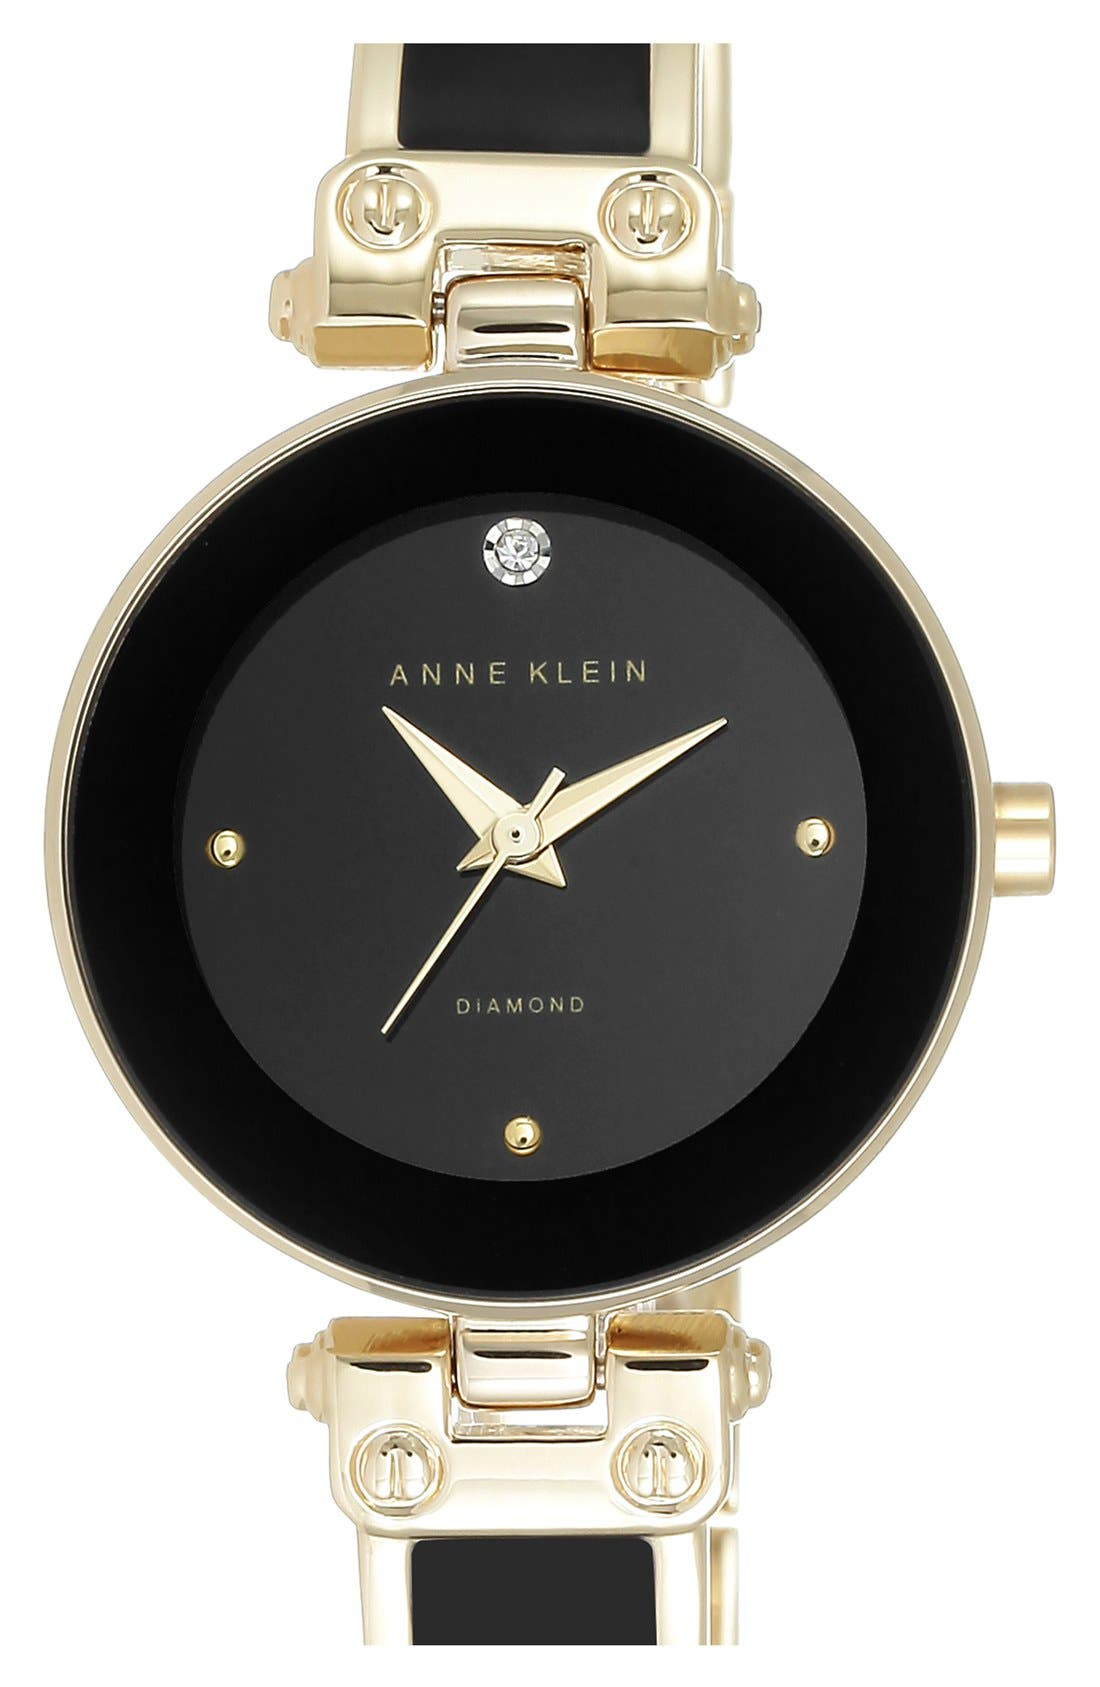 ANNE KLEIN Diamond Marker Bangle Watch, 28Mm in Black/ Gold